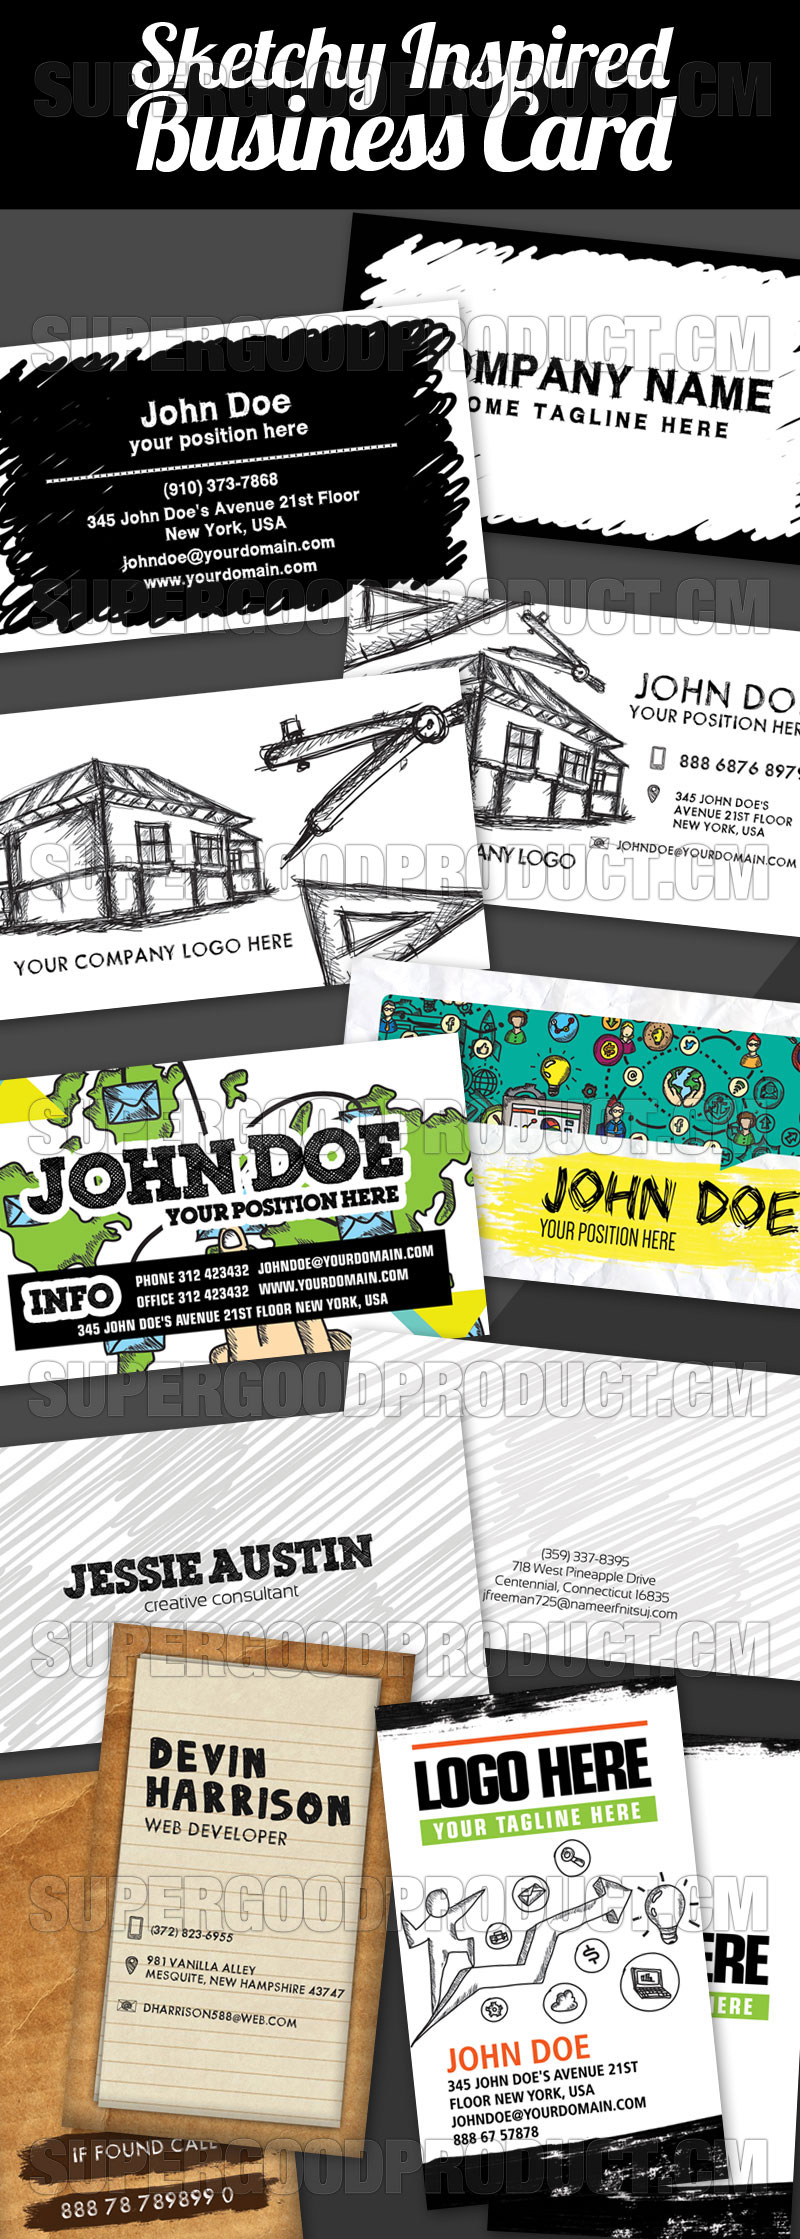 Sketchy-Inspired-Business-Card